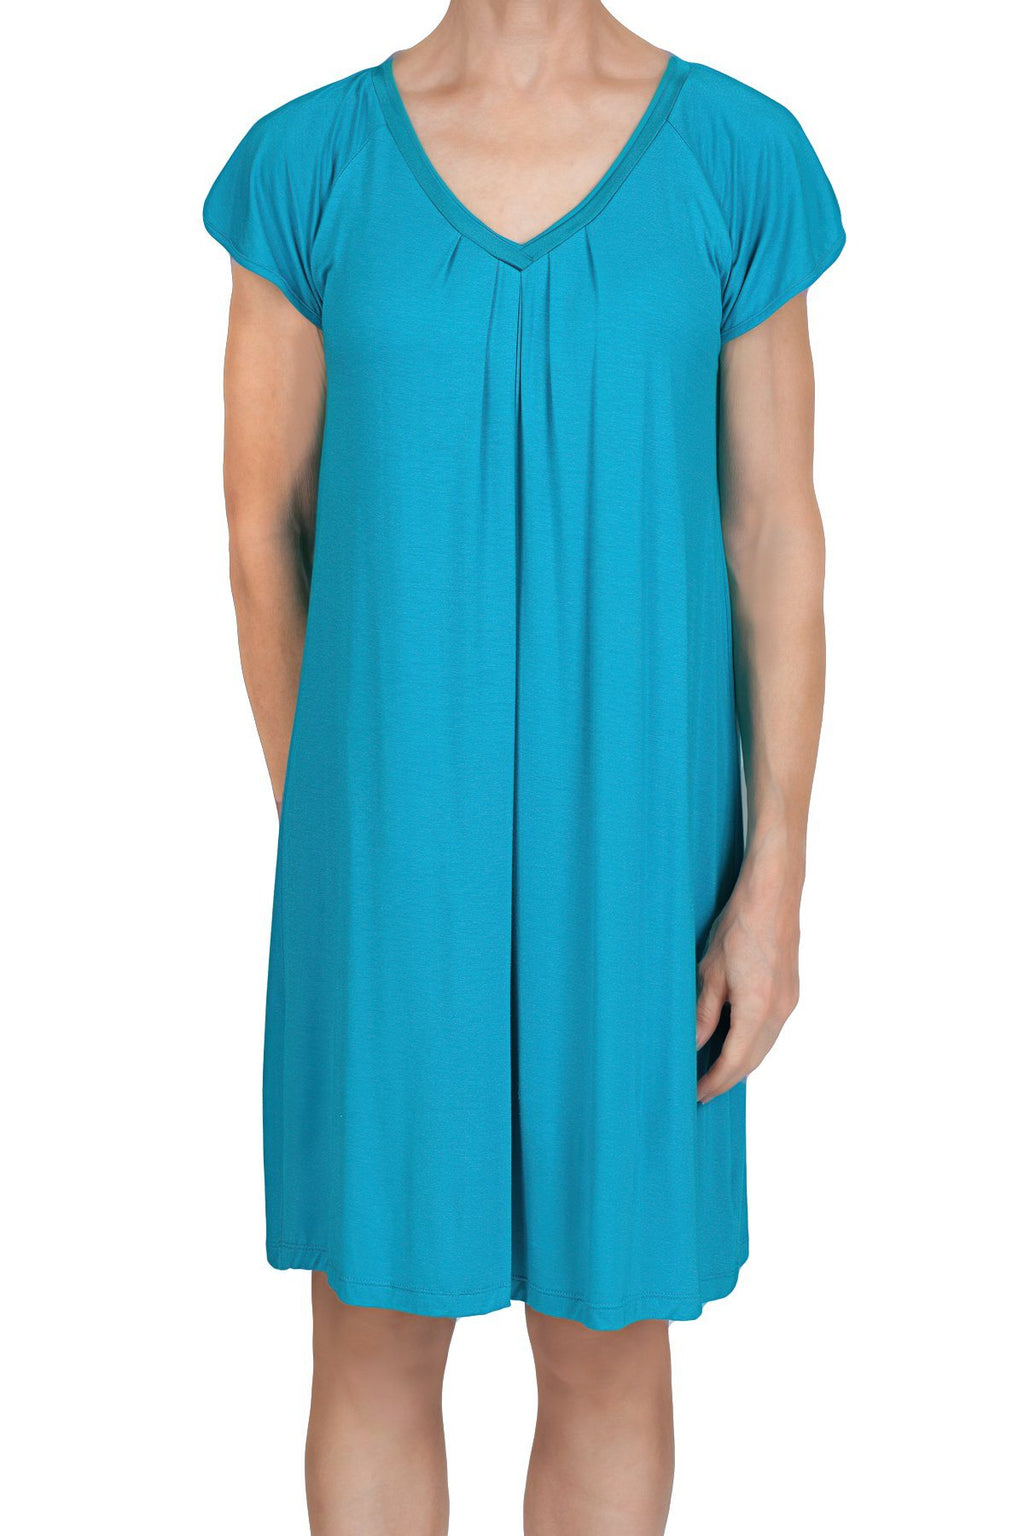 Sydney Knit Nightshirt - Malta Blue Mystique Intimates